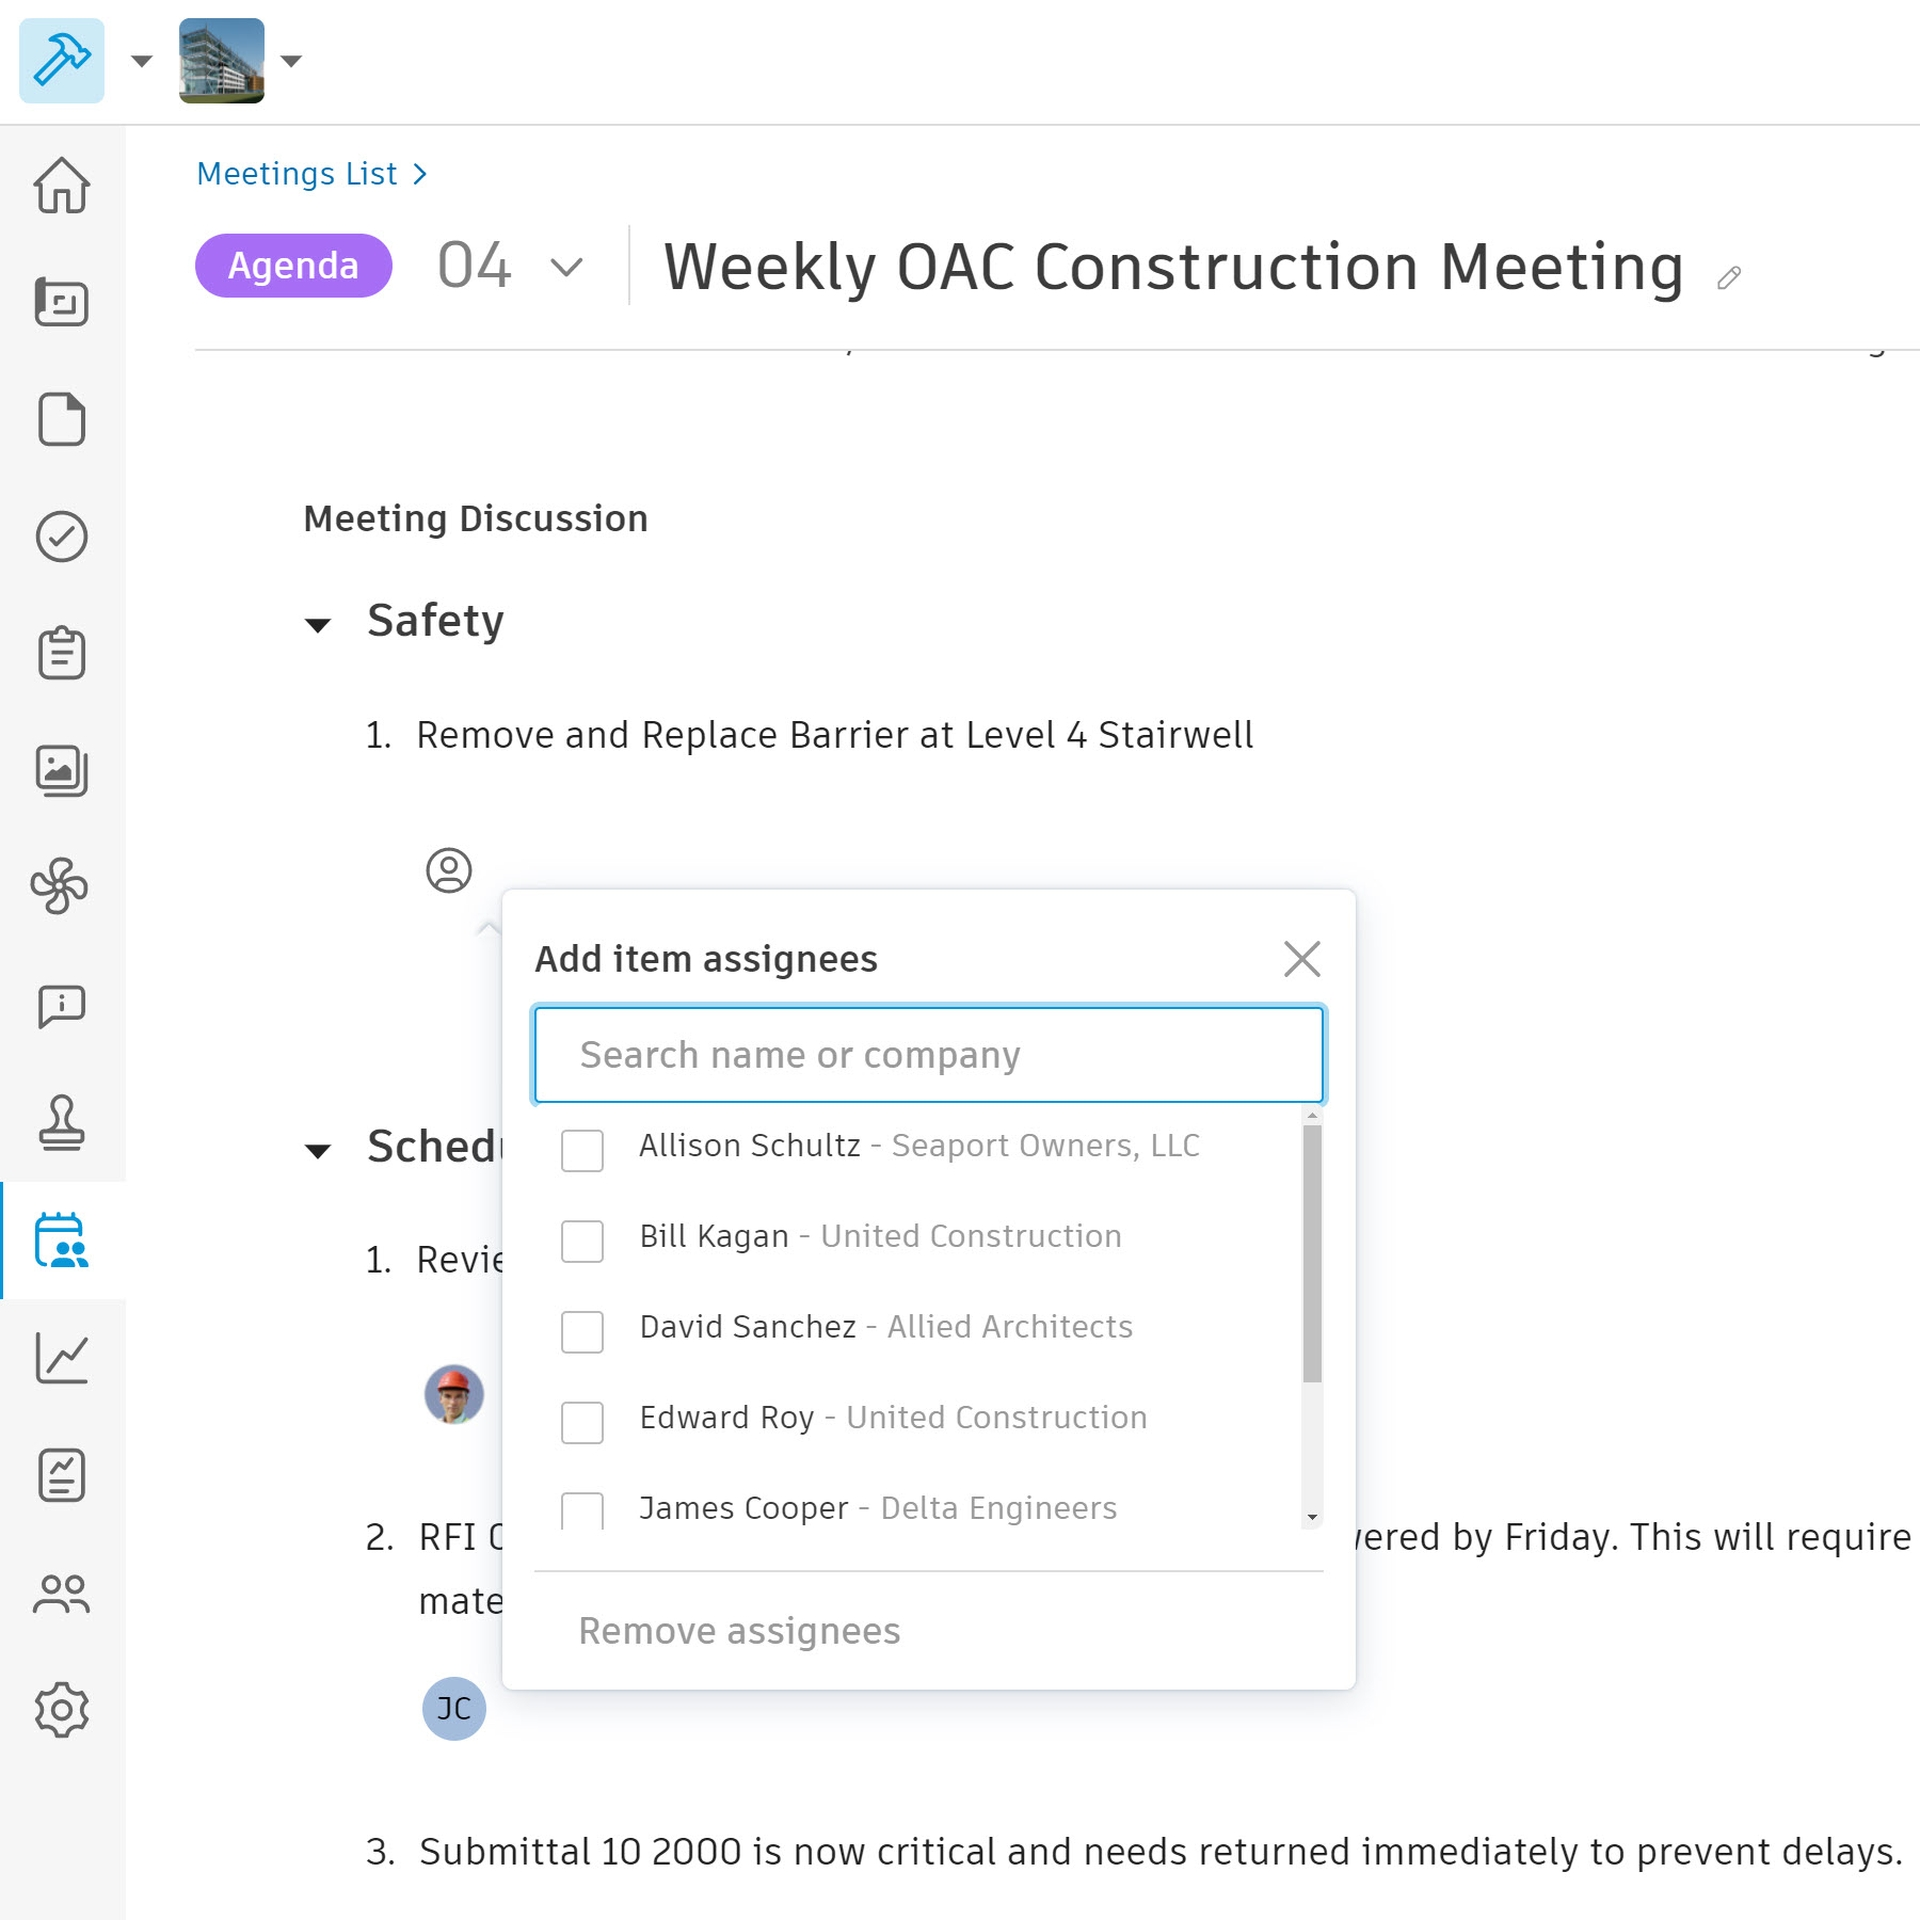 OAC meetings in Construction Meetings Record Software.